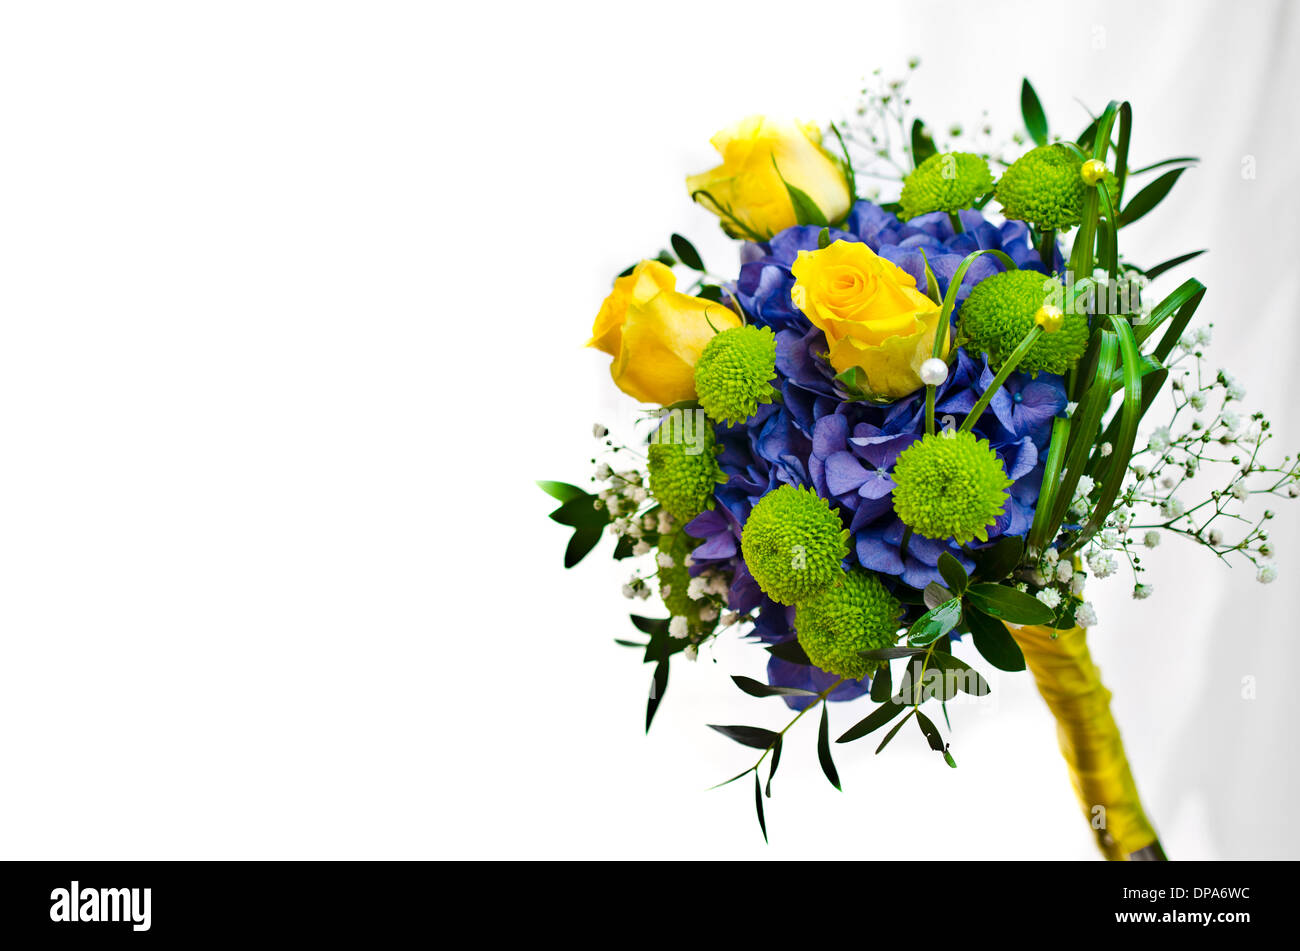 Bridal Bouquet With Blue Hydrangea And Yellow Roses Stock Photo